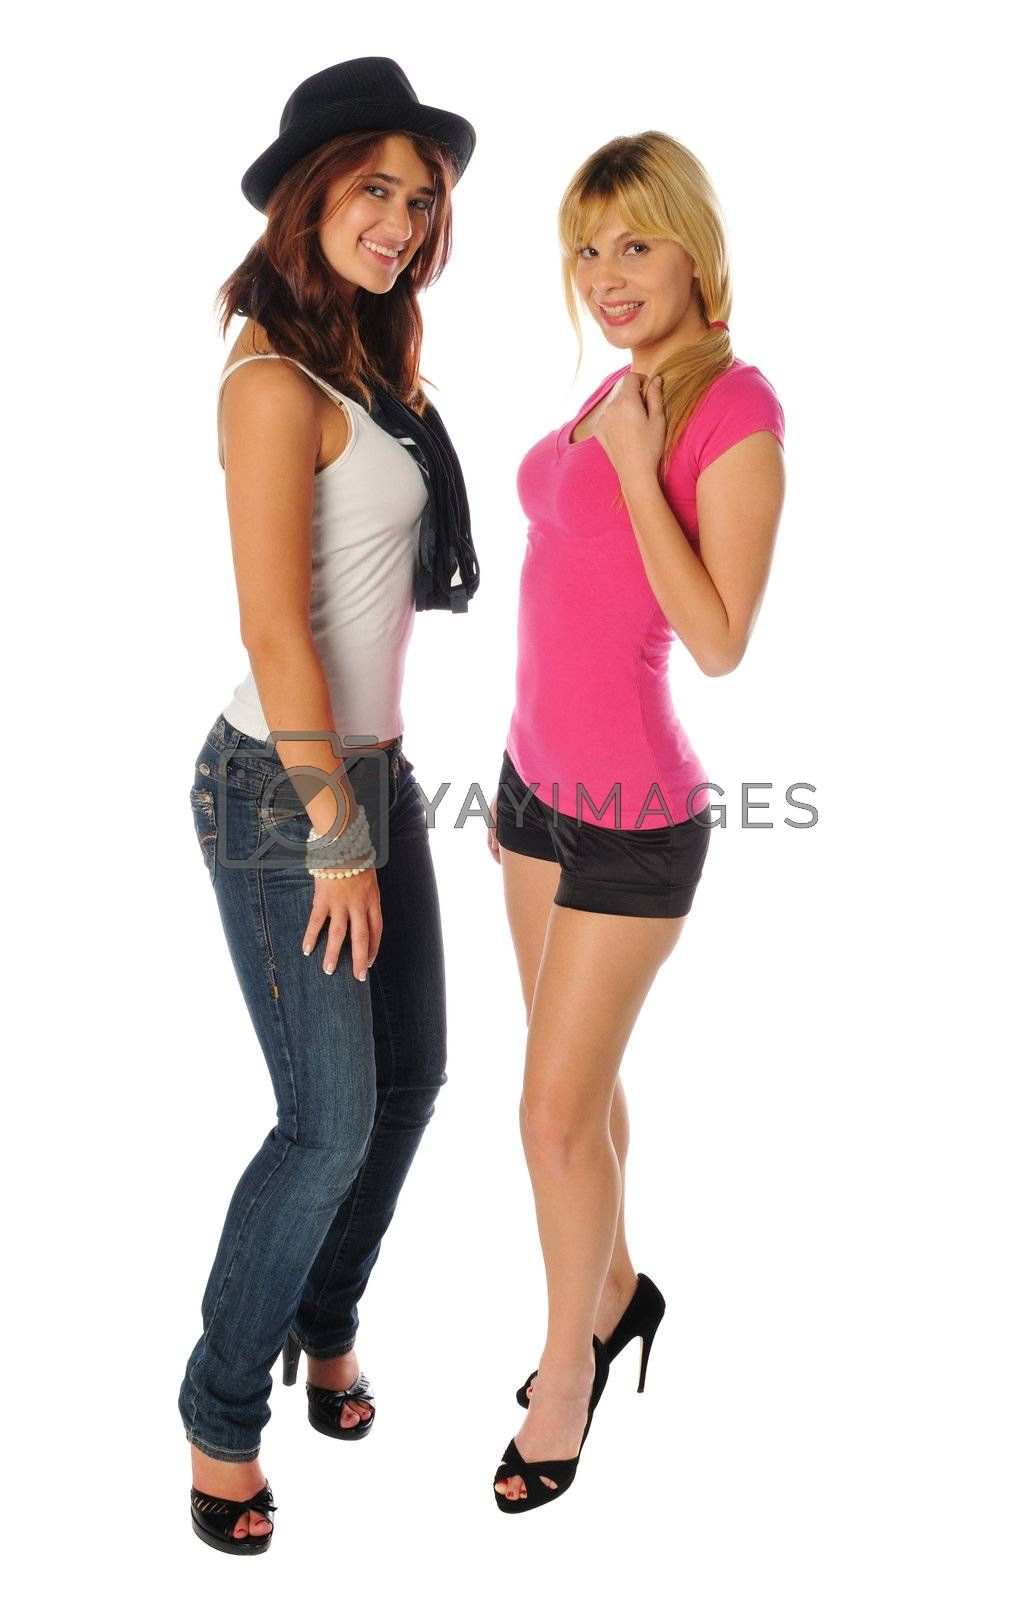 Royalty free image of two friends posing together by PDImages